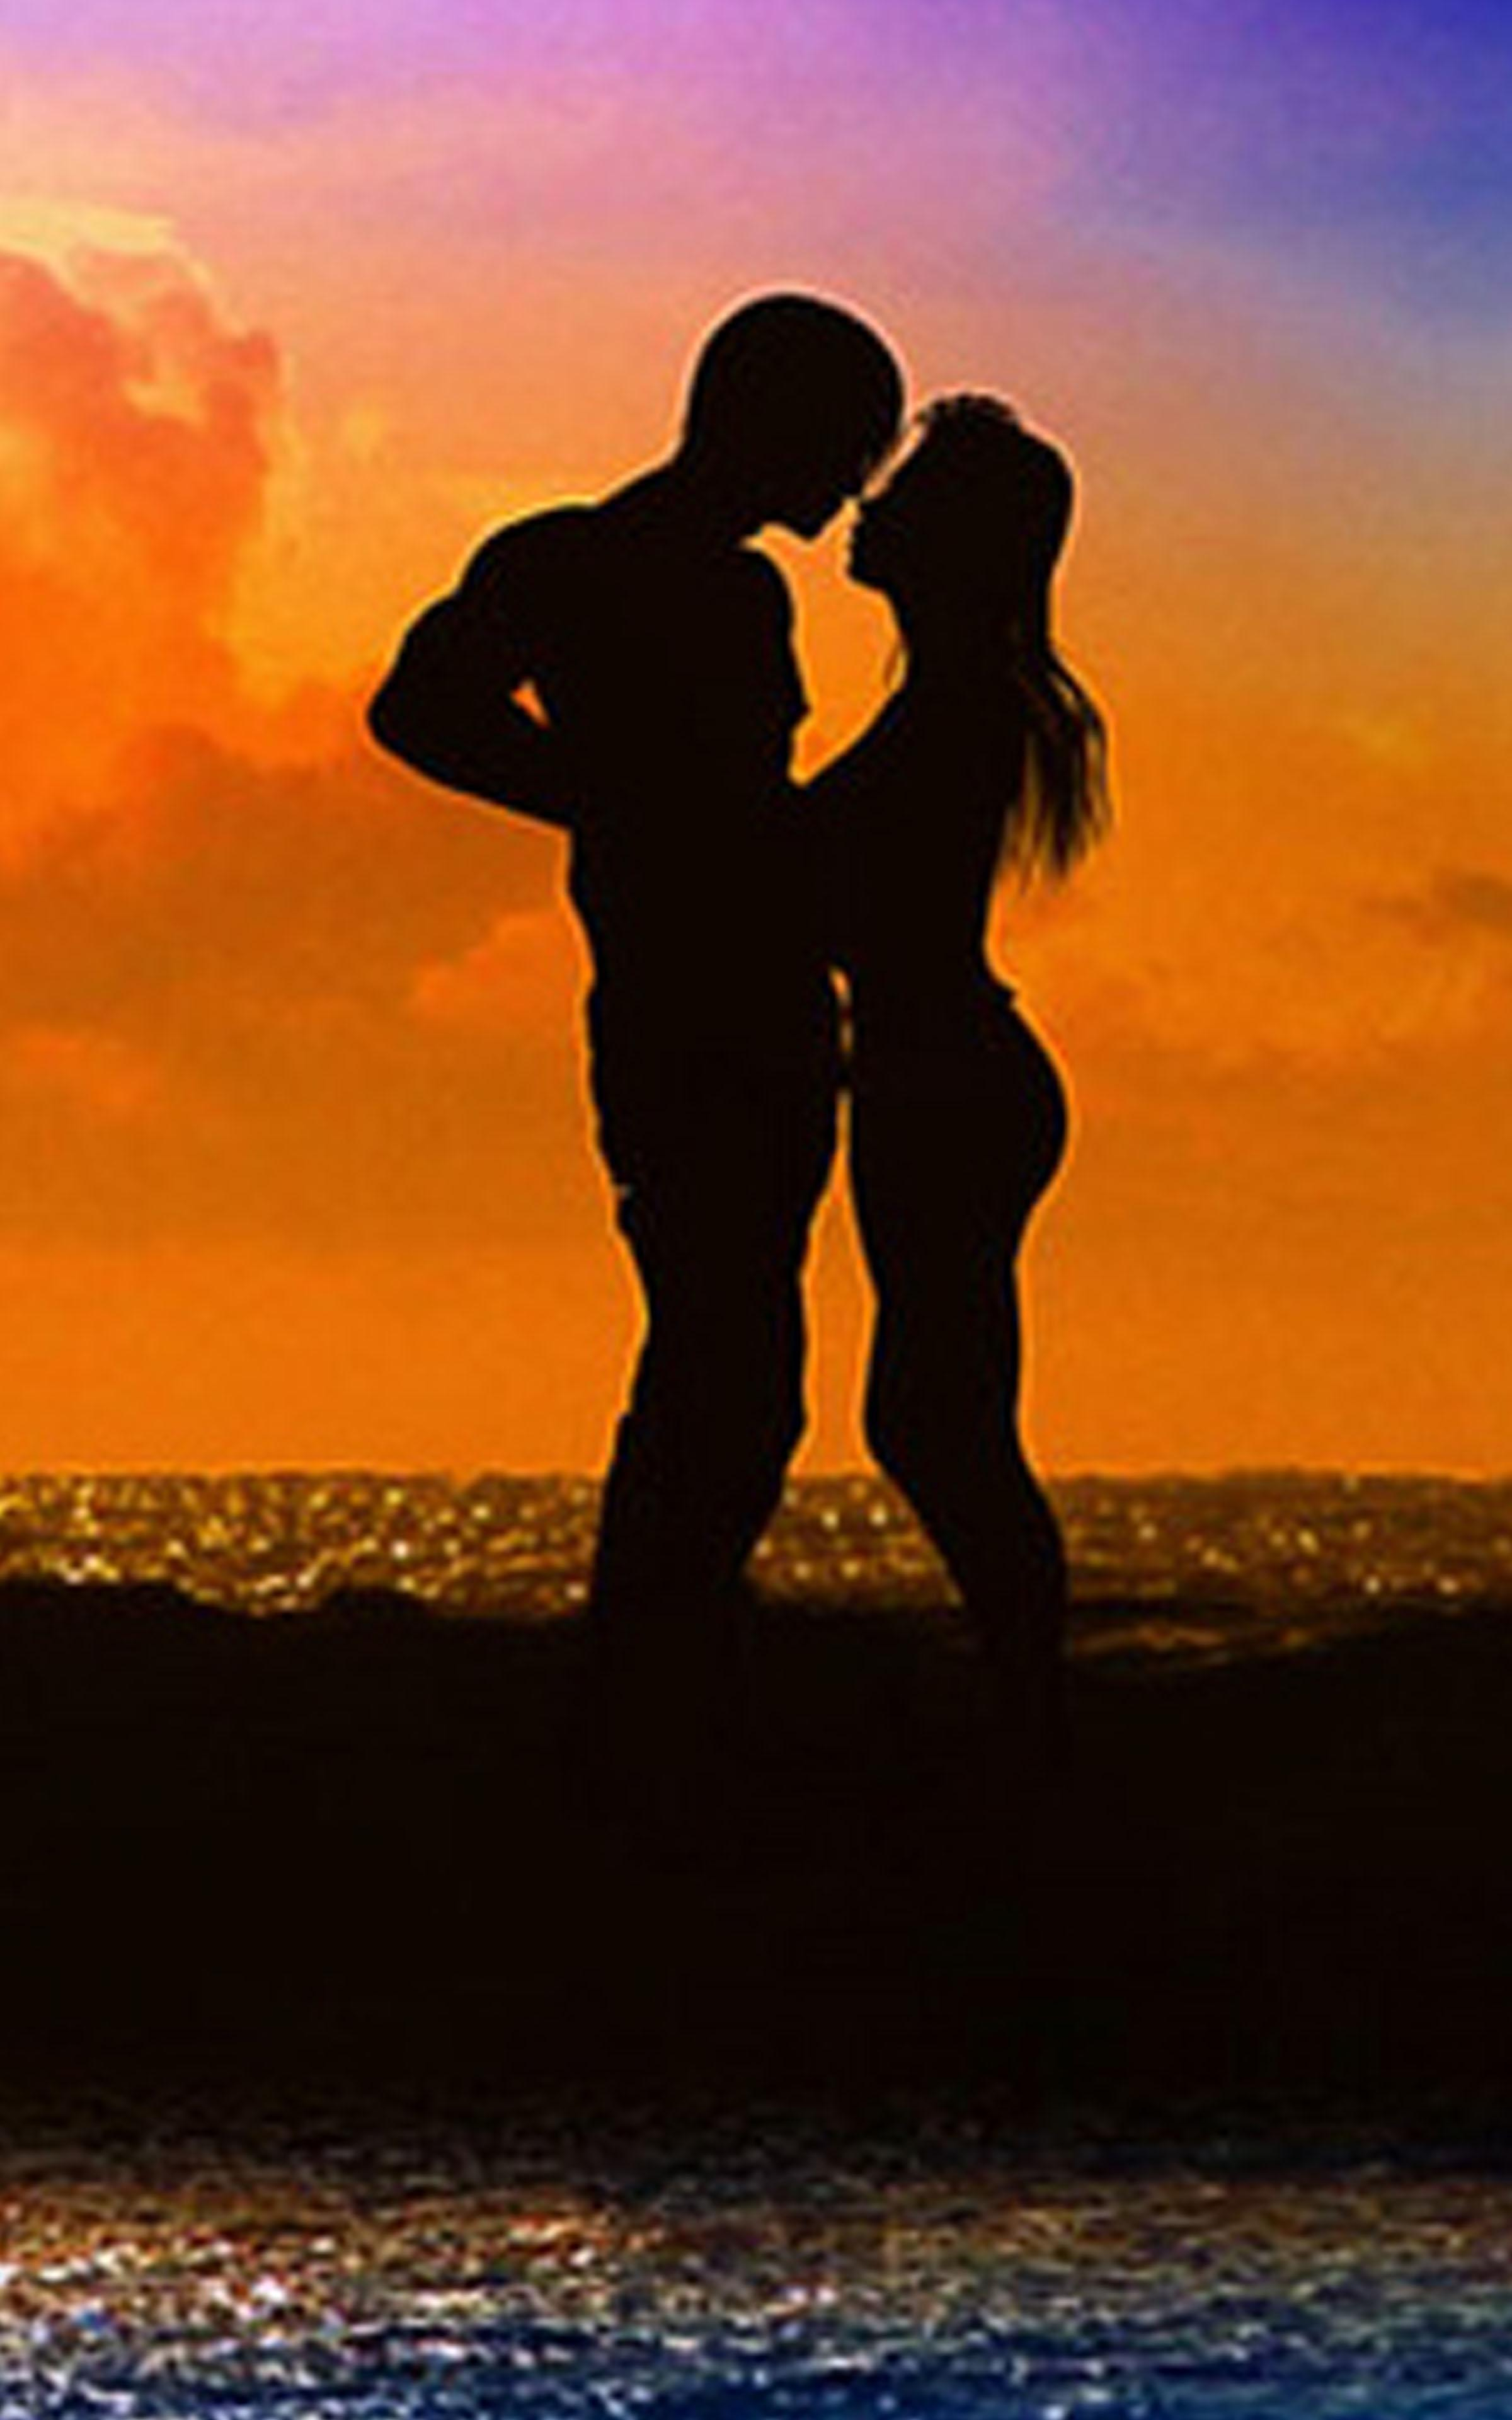 Romantic Kiss Wallpaper Full HD for Android   APK Download 2400x3840